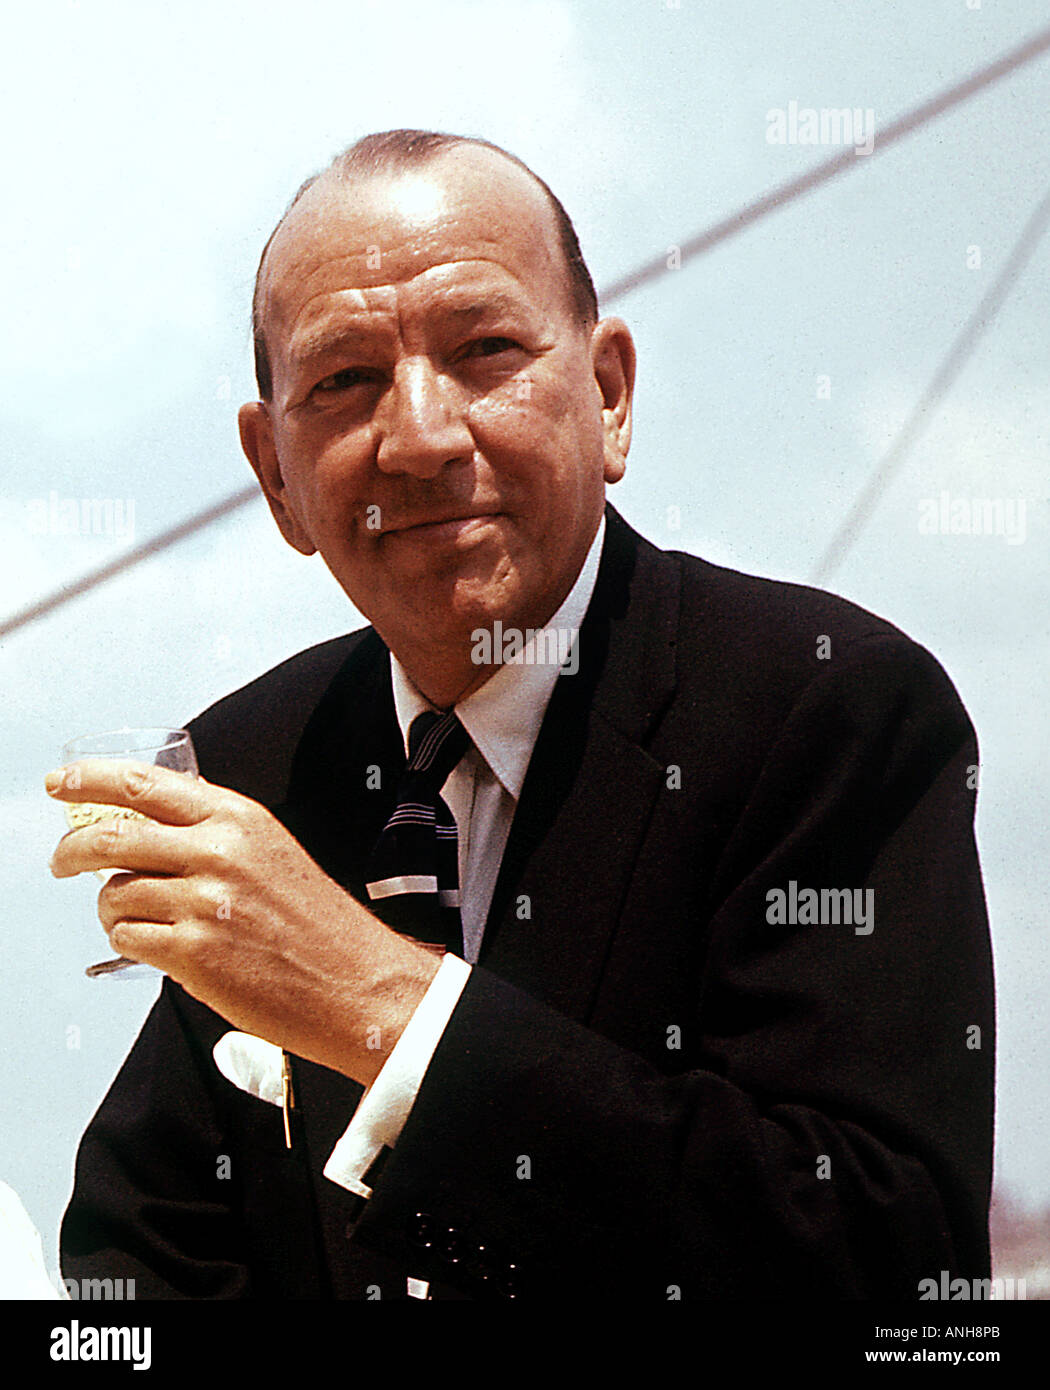 NOEL COWARD British actor playwright producer 1899 to 1973 - Stock Image